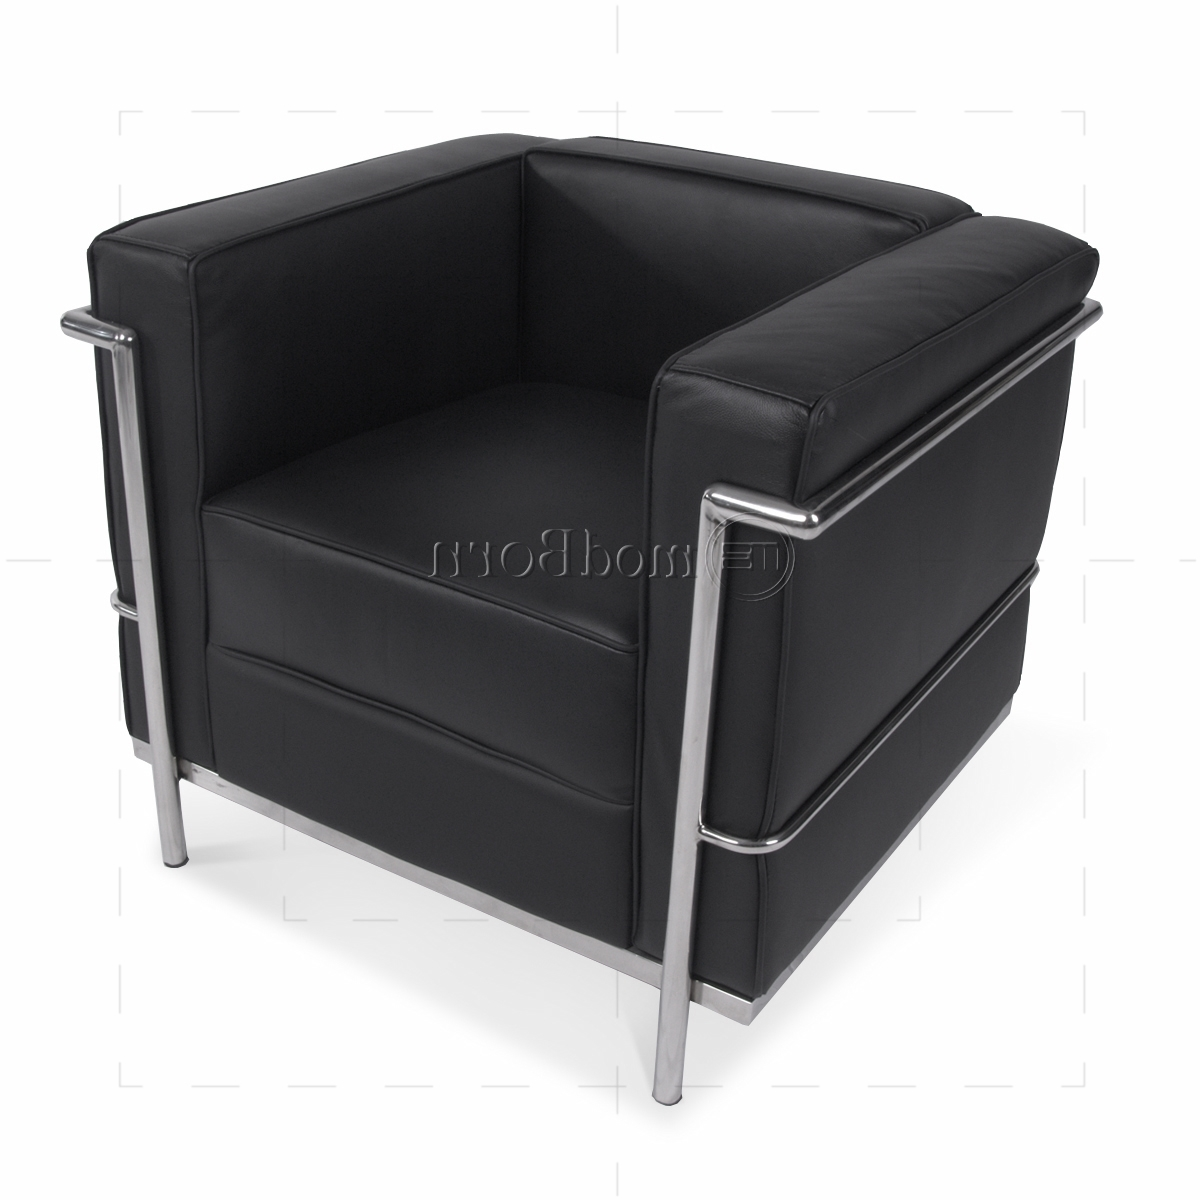 Le Corbusier Style Lc2 Armchair 1 Seater Black Leather – Replica For Fashionable Single Seat Sofa Chairs (View 11 of 20)